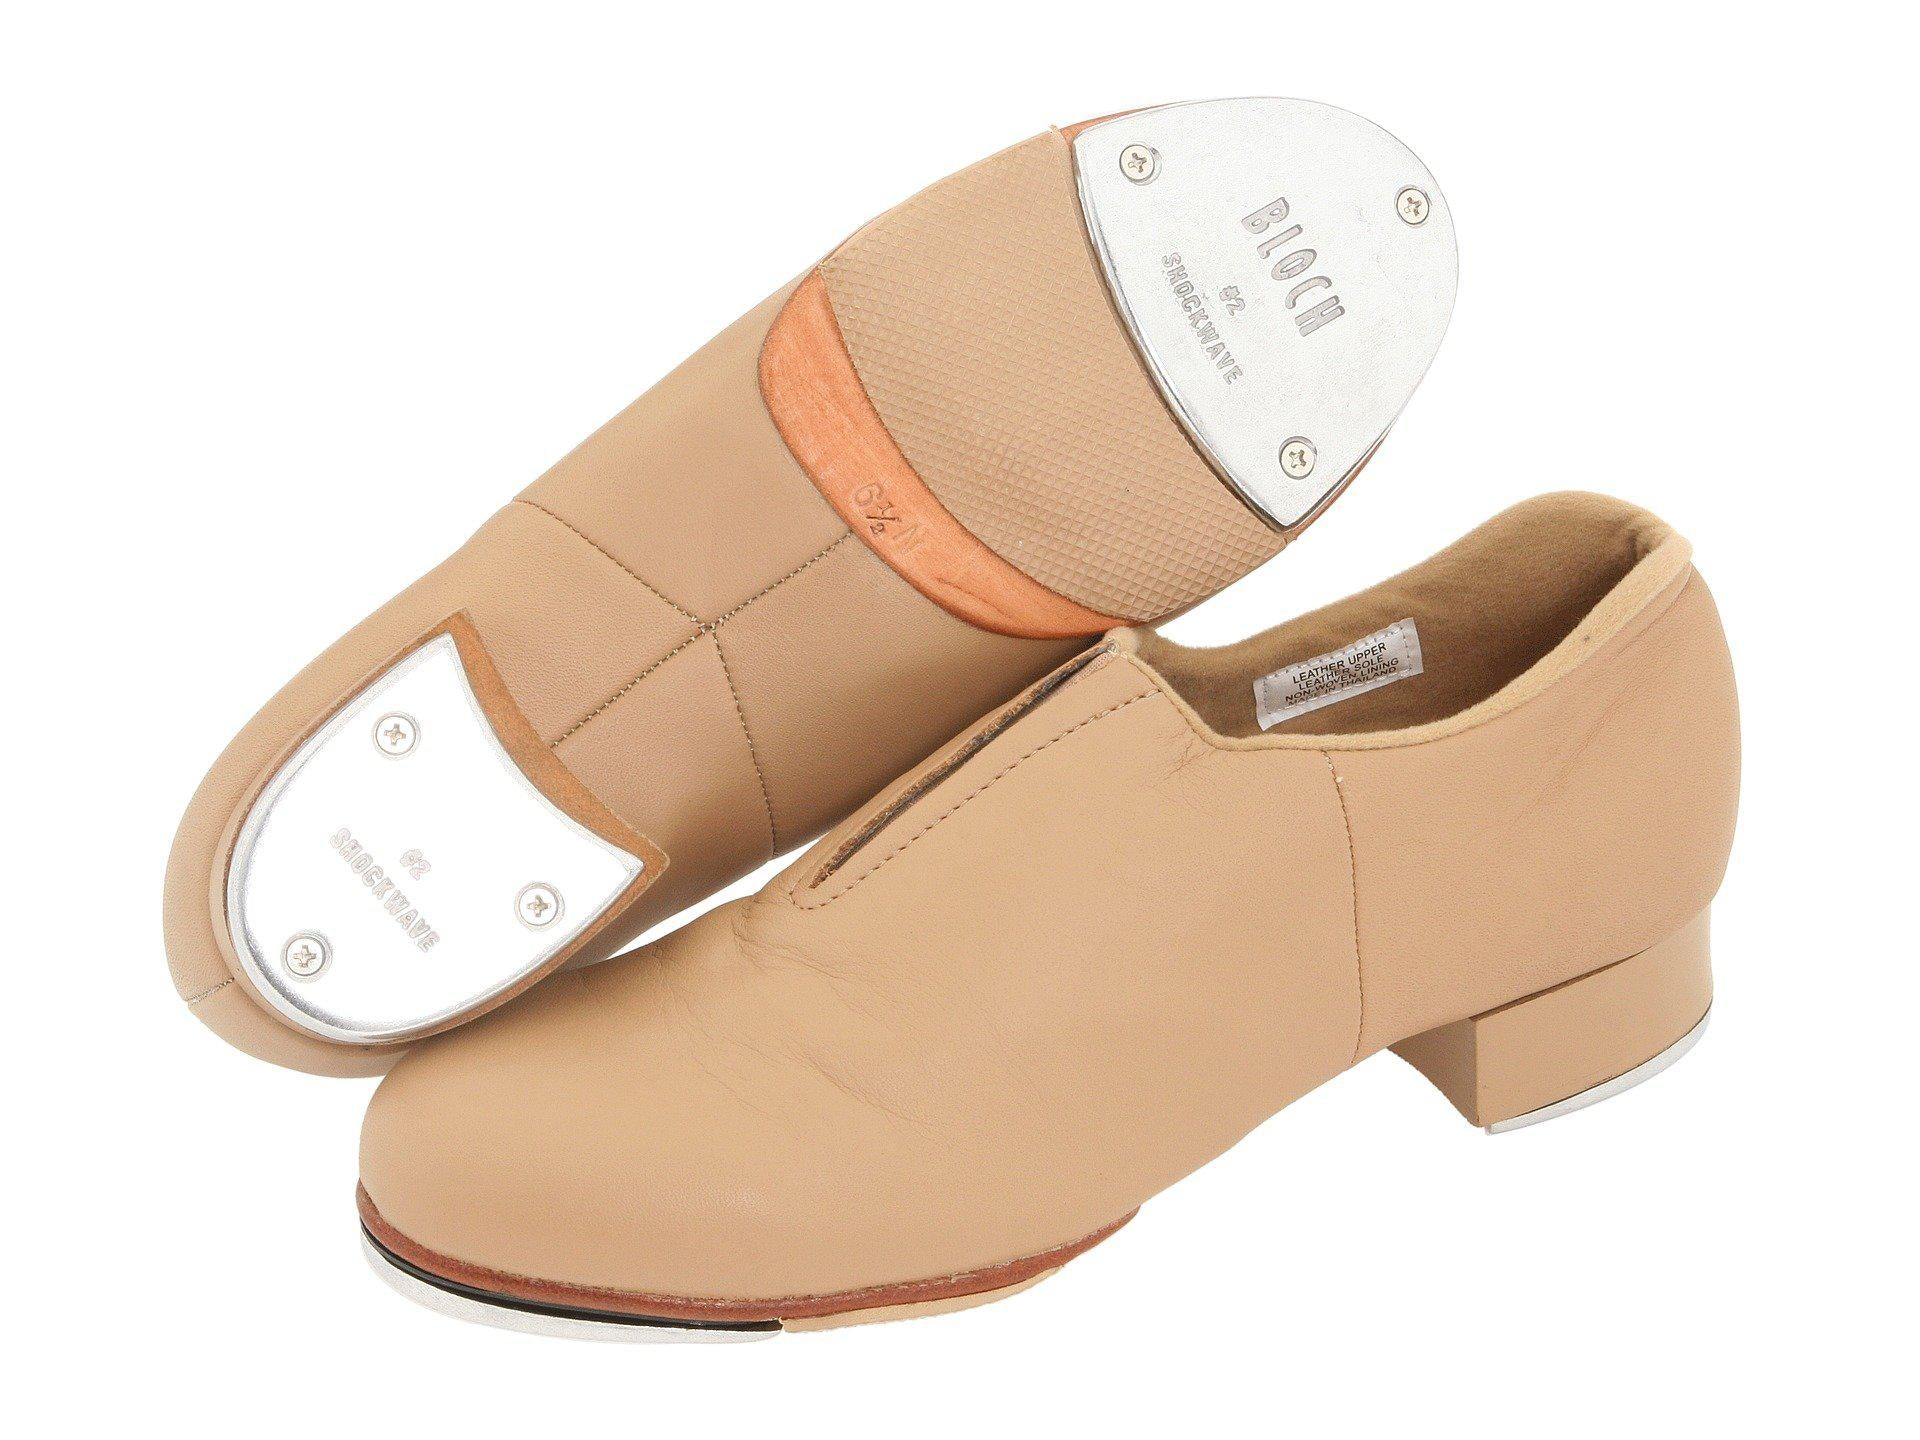 Bloch Adult Leather Tap Flex Slip On